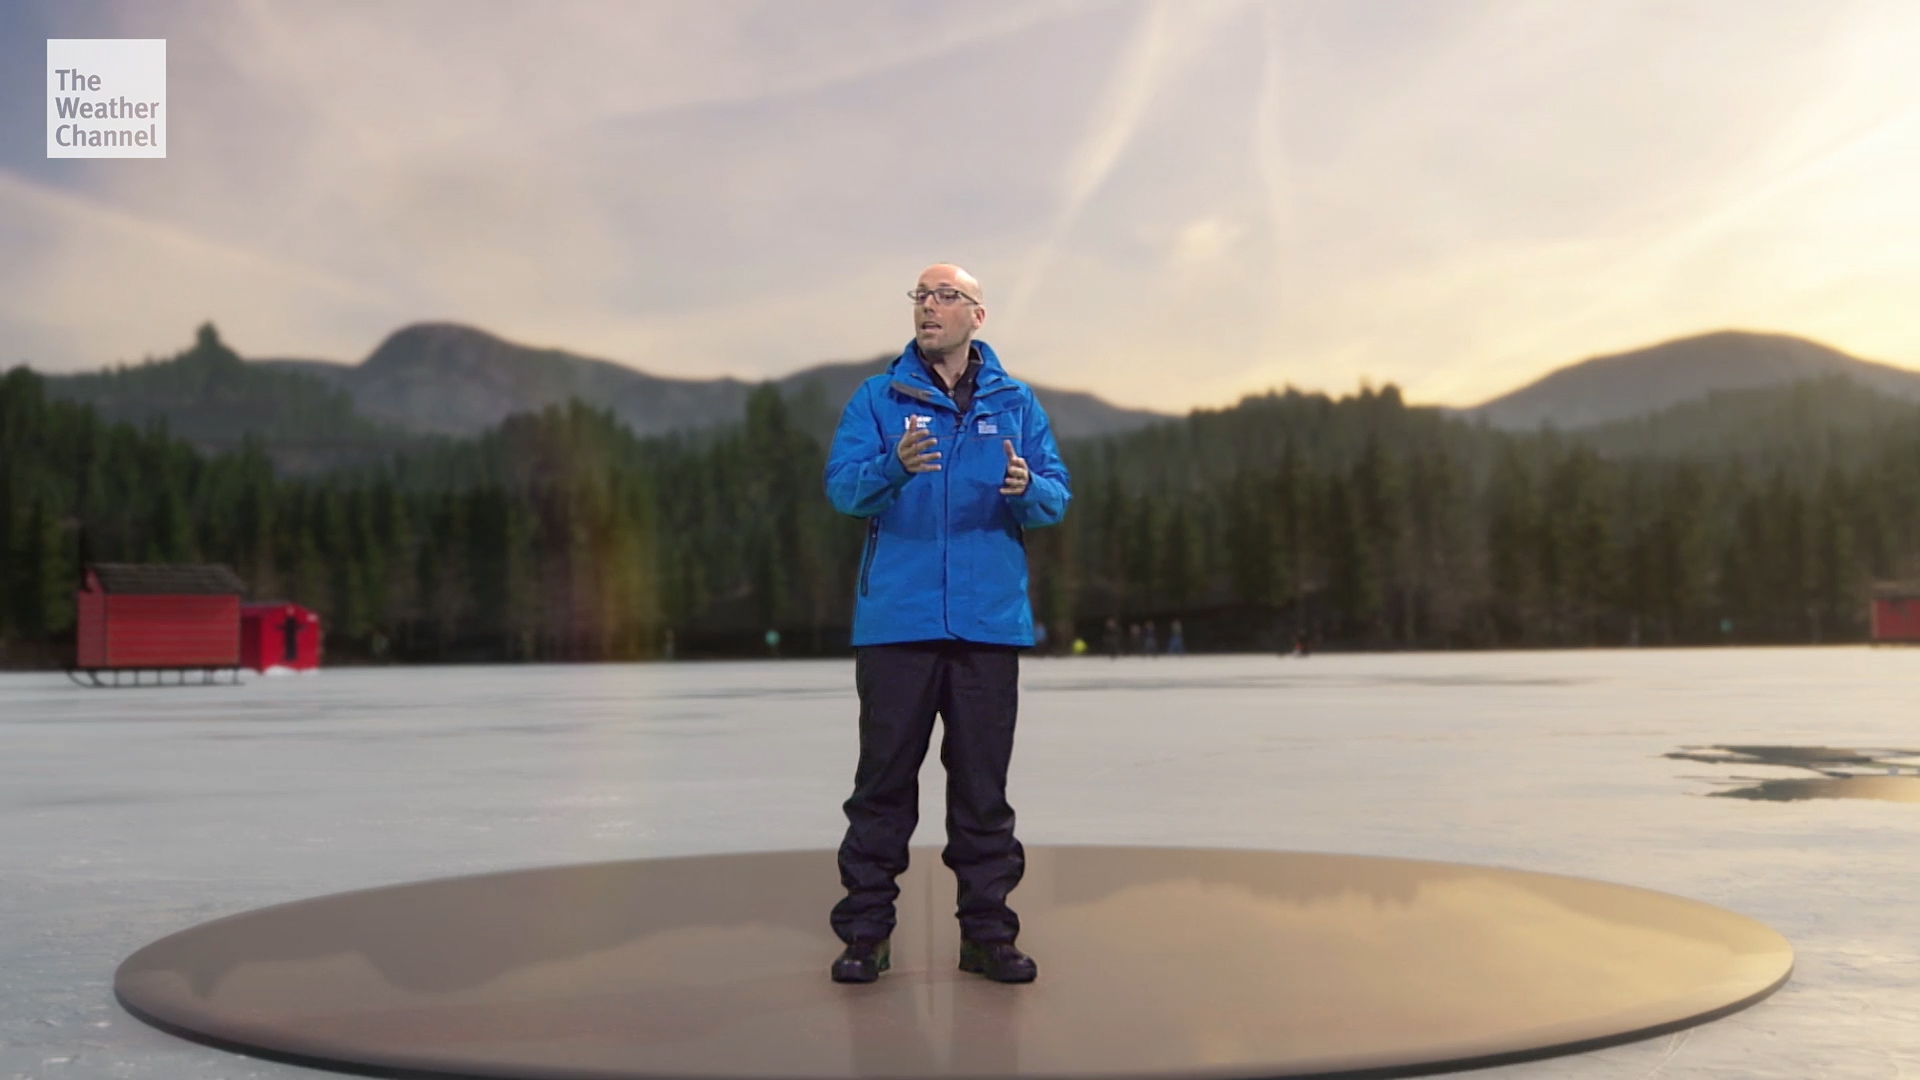 See The Weather Channel's immersive mixed reality segment in action - The Washington Post